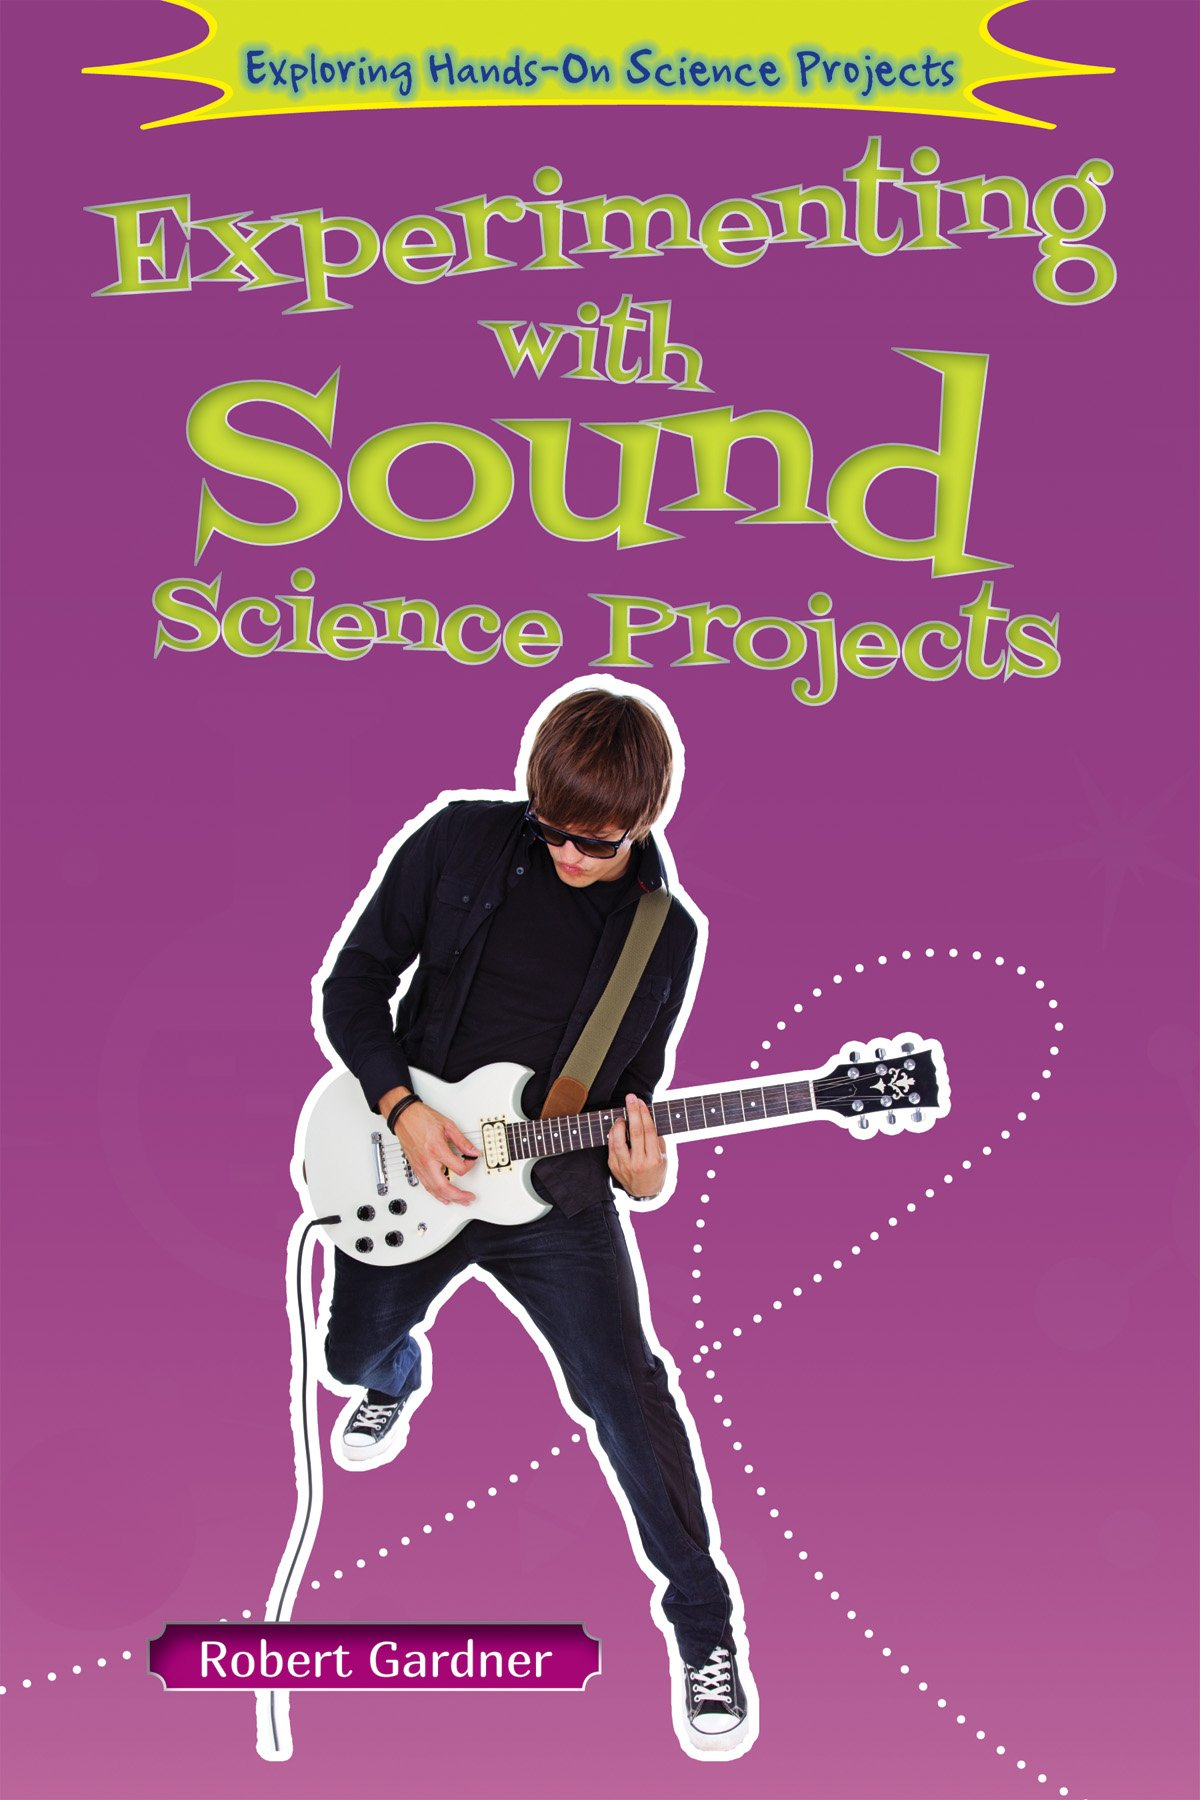 Experimenting with Sound Science Projects (Exploring Hands-On Science Projects (Enslow)) PDF